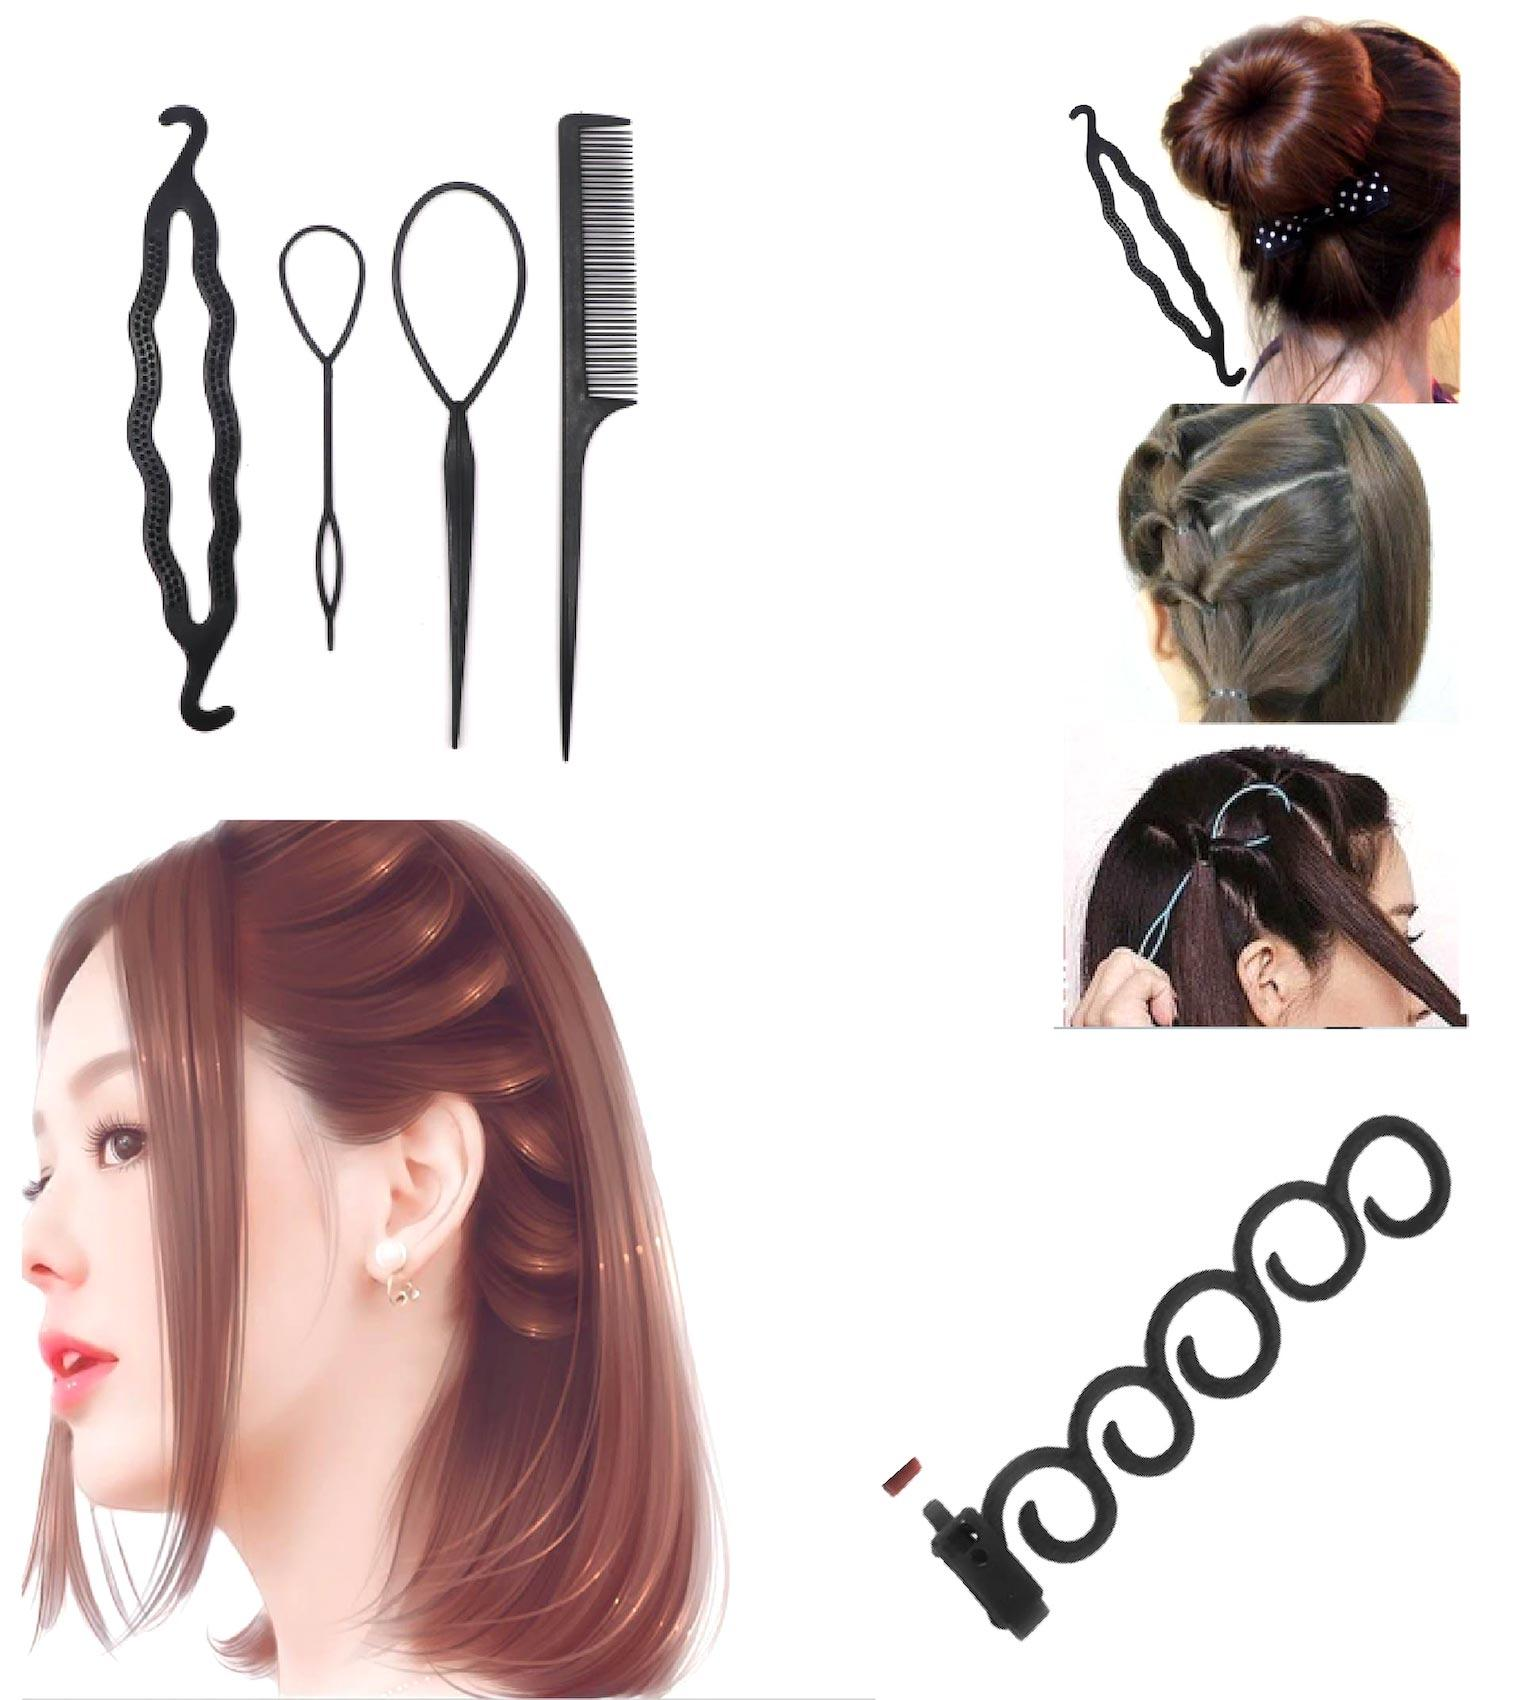 Pack of 2 Hair Styling Set 2pcs Hair Styling Tools Weave Braid Hair Braider Tool Hair Styling Tool